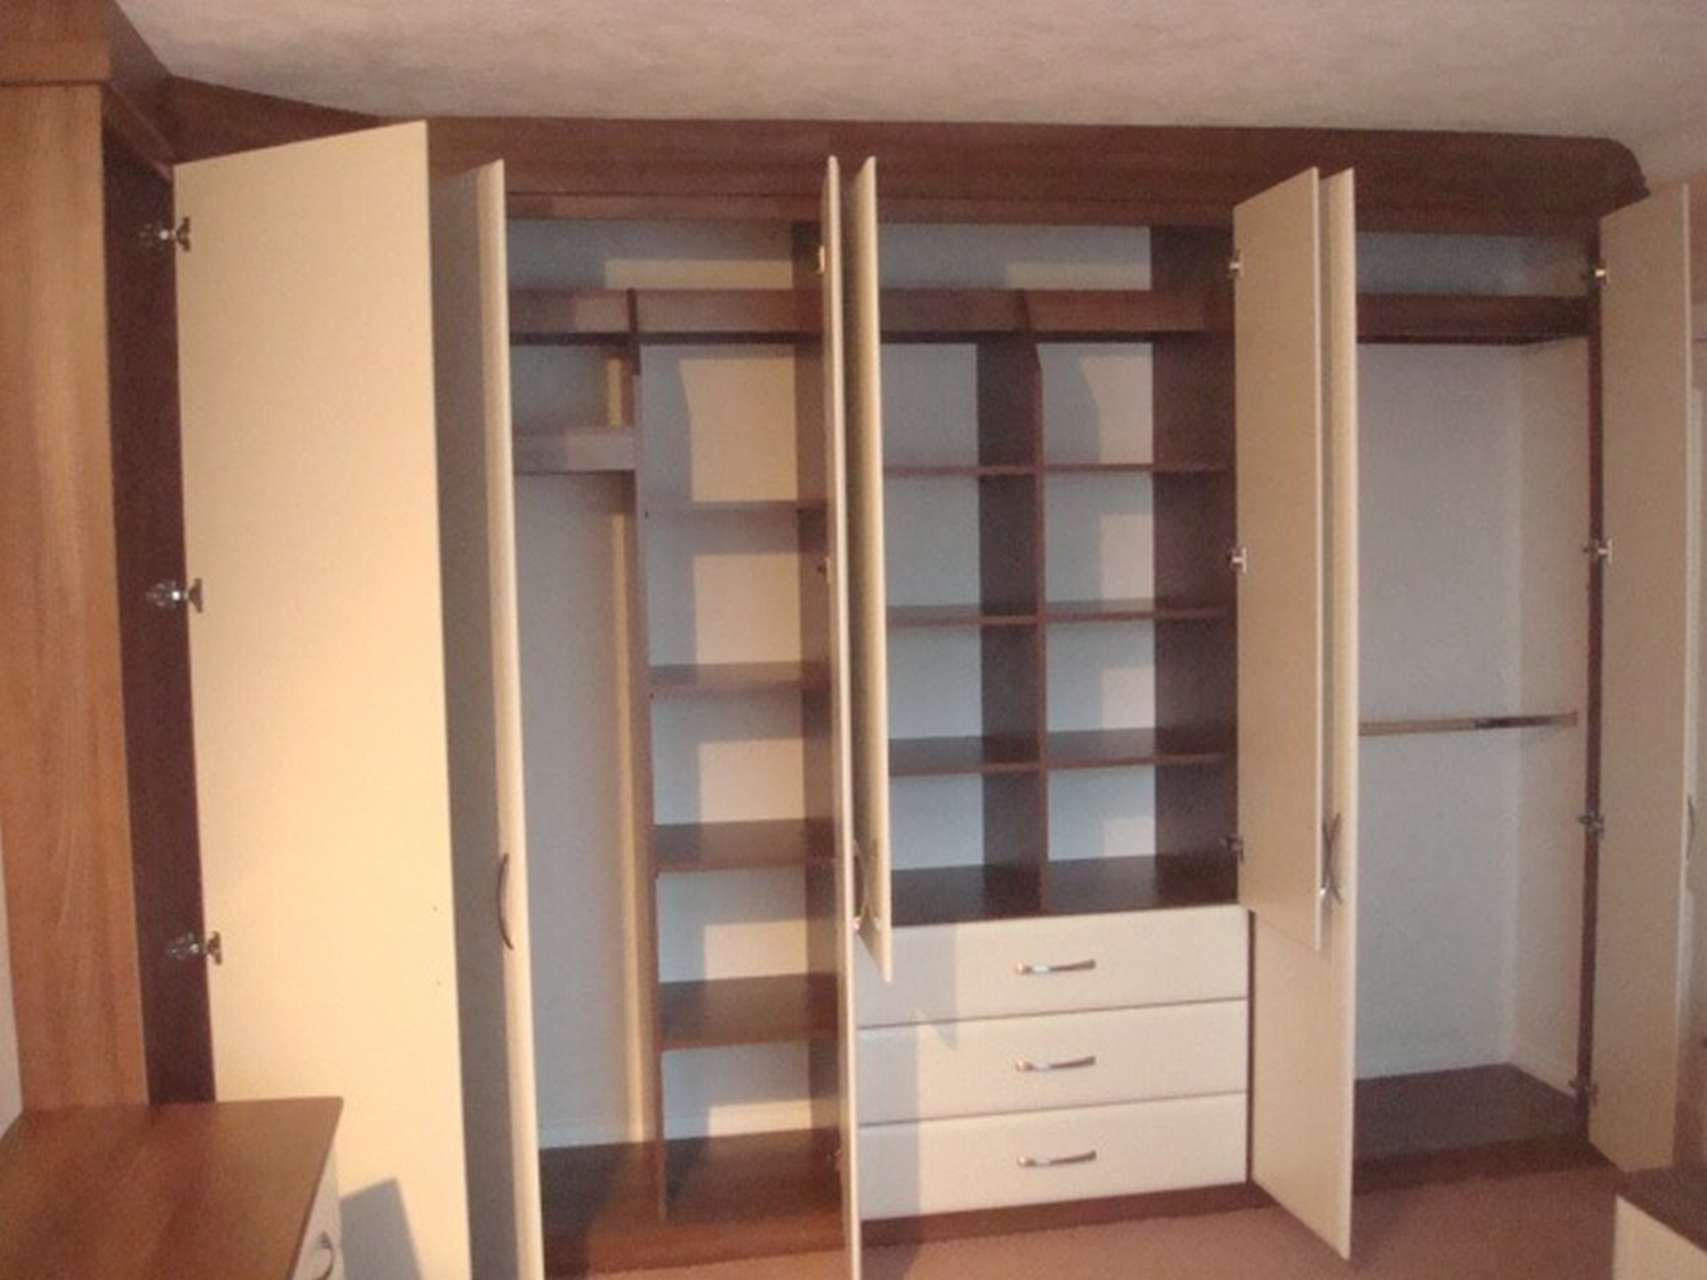 Oodles of storage in either hinged wardrobes or sliding wardrobes